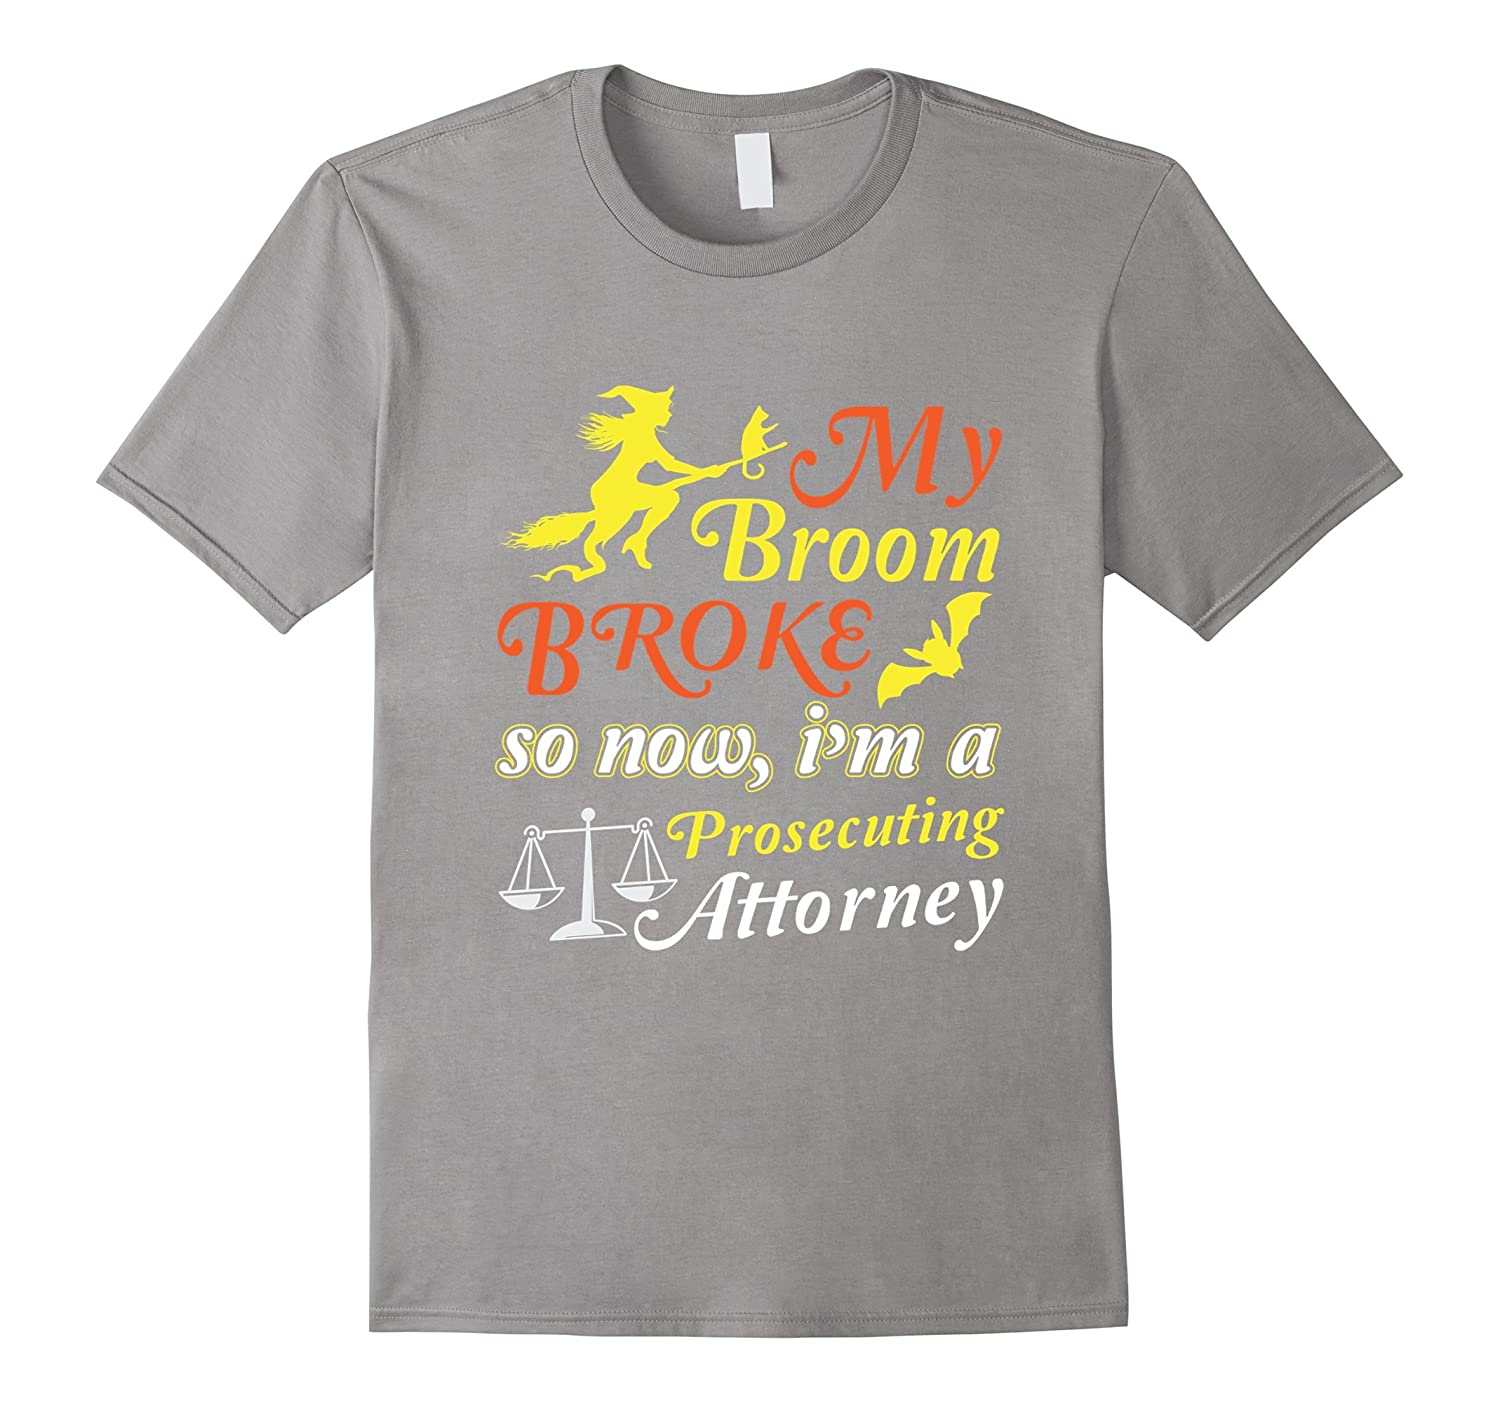 Prosecutor Prosecuting Attorney Shirt-Best Gifts For Lawyers-Art